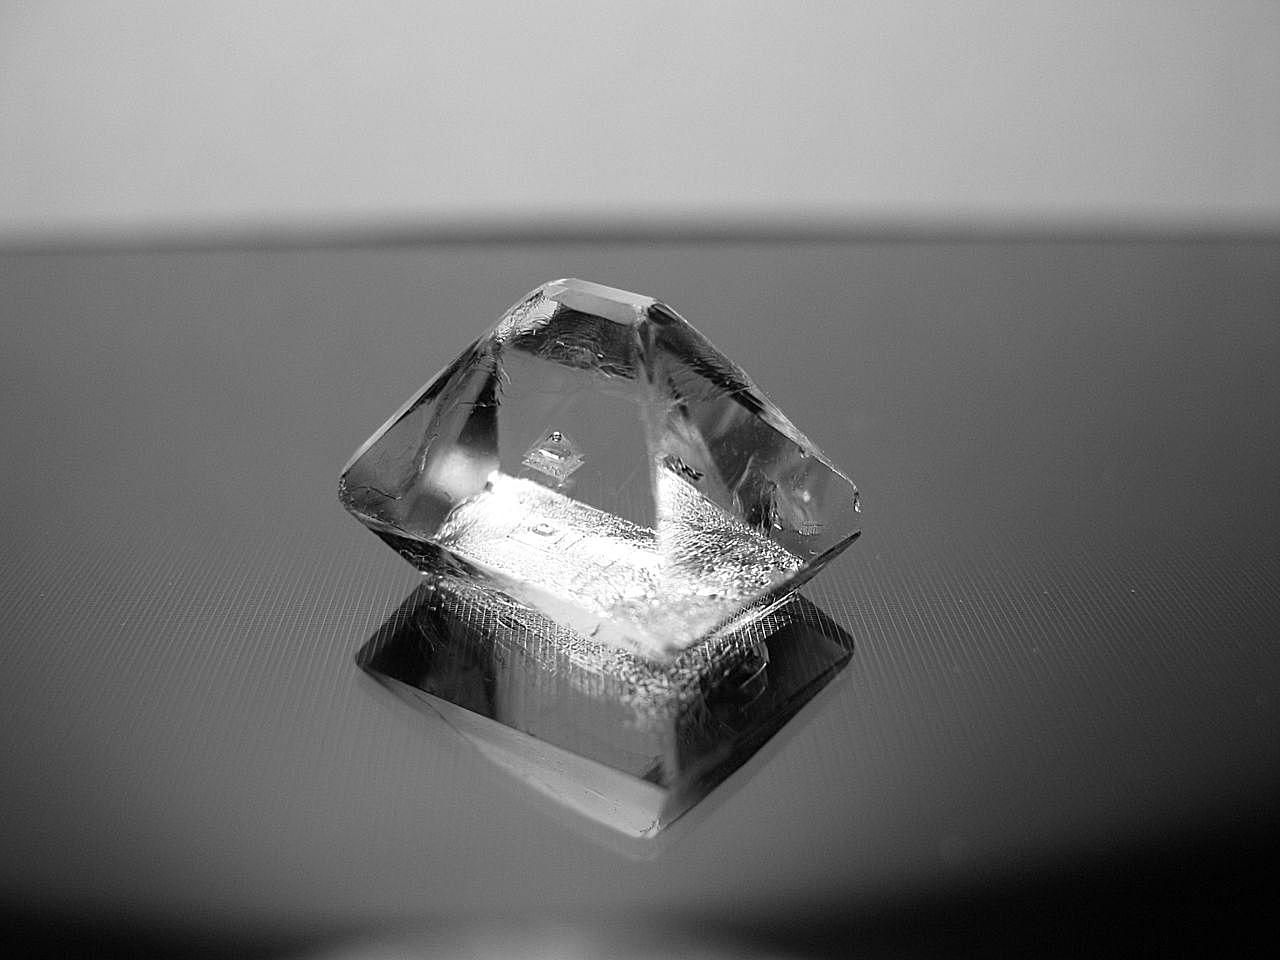 You usually can get a nice alum crystal overnight (shown here). If you let the crystal grow for a day or more, you can get larger crystals.